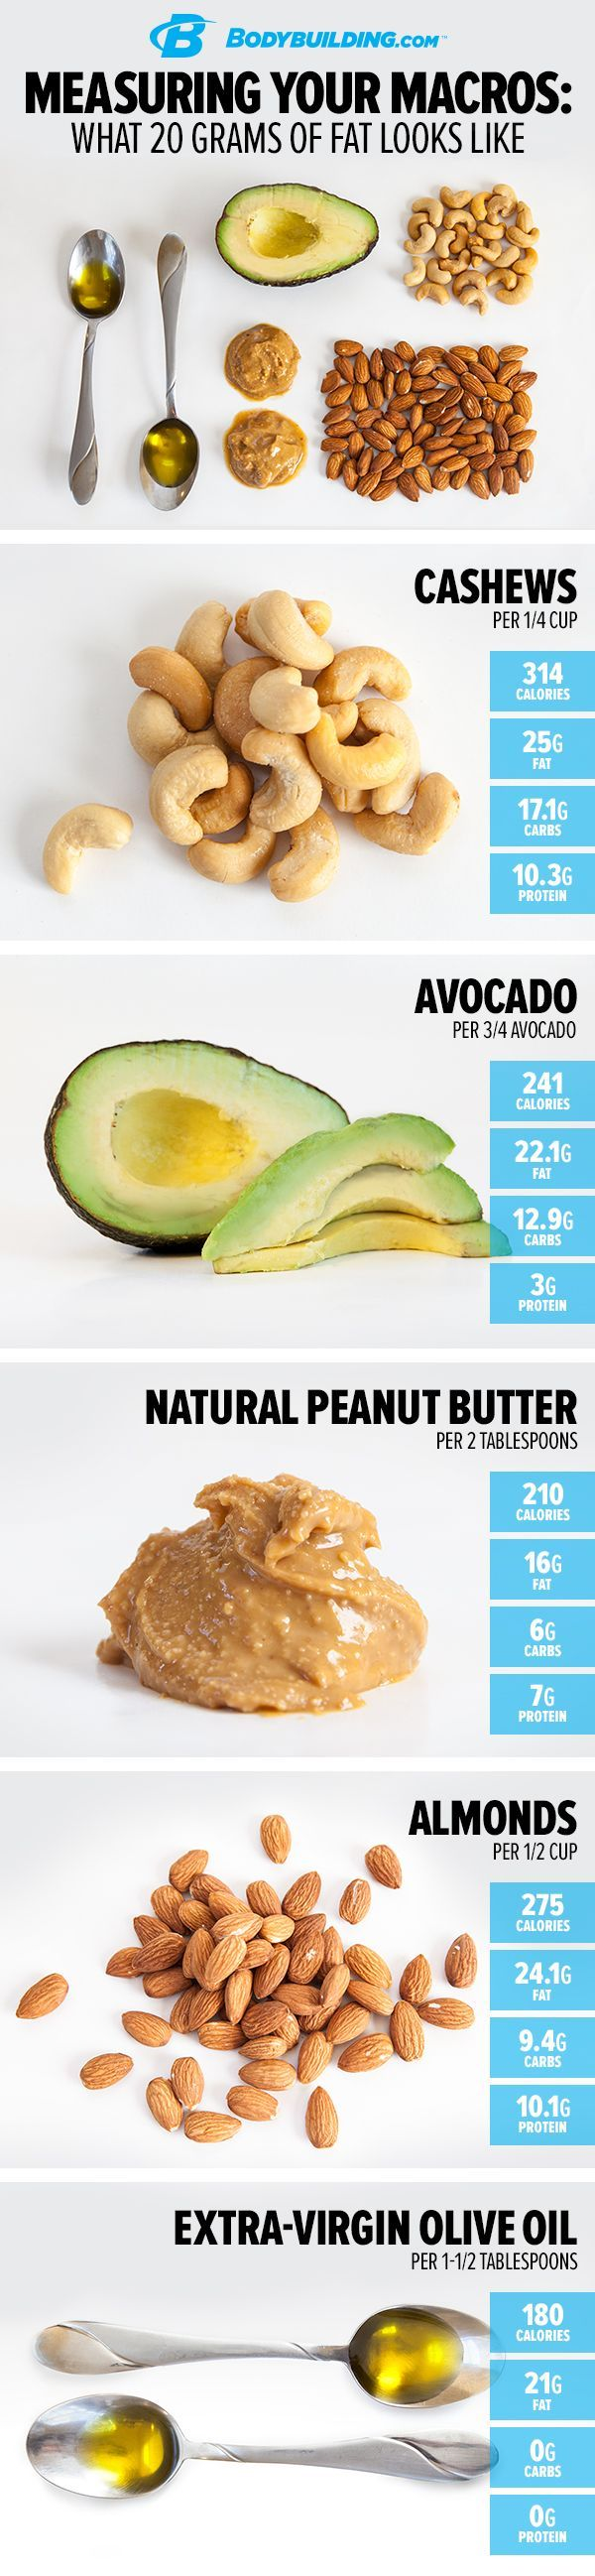 MEASURING YOUR MACROS: WHAT 30 GRAMS OF PROTEIN LOOKS LIKE. Want to build muscle and lose fat? Then you need protein! Here's how much you need and how to measure it for each meal